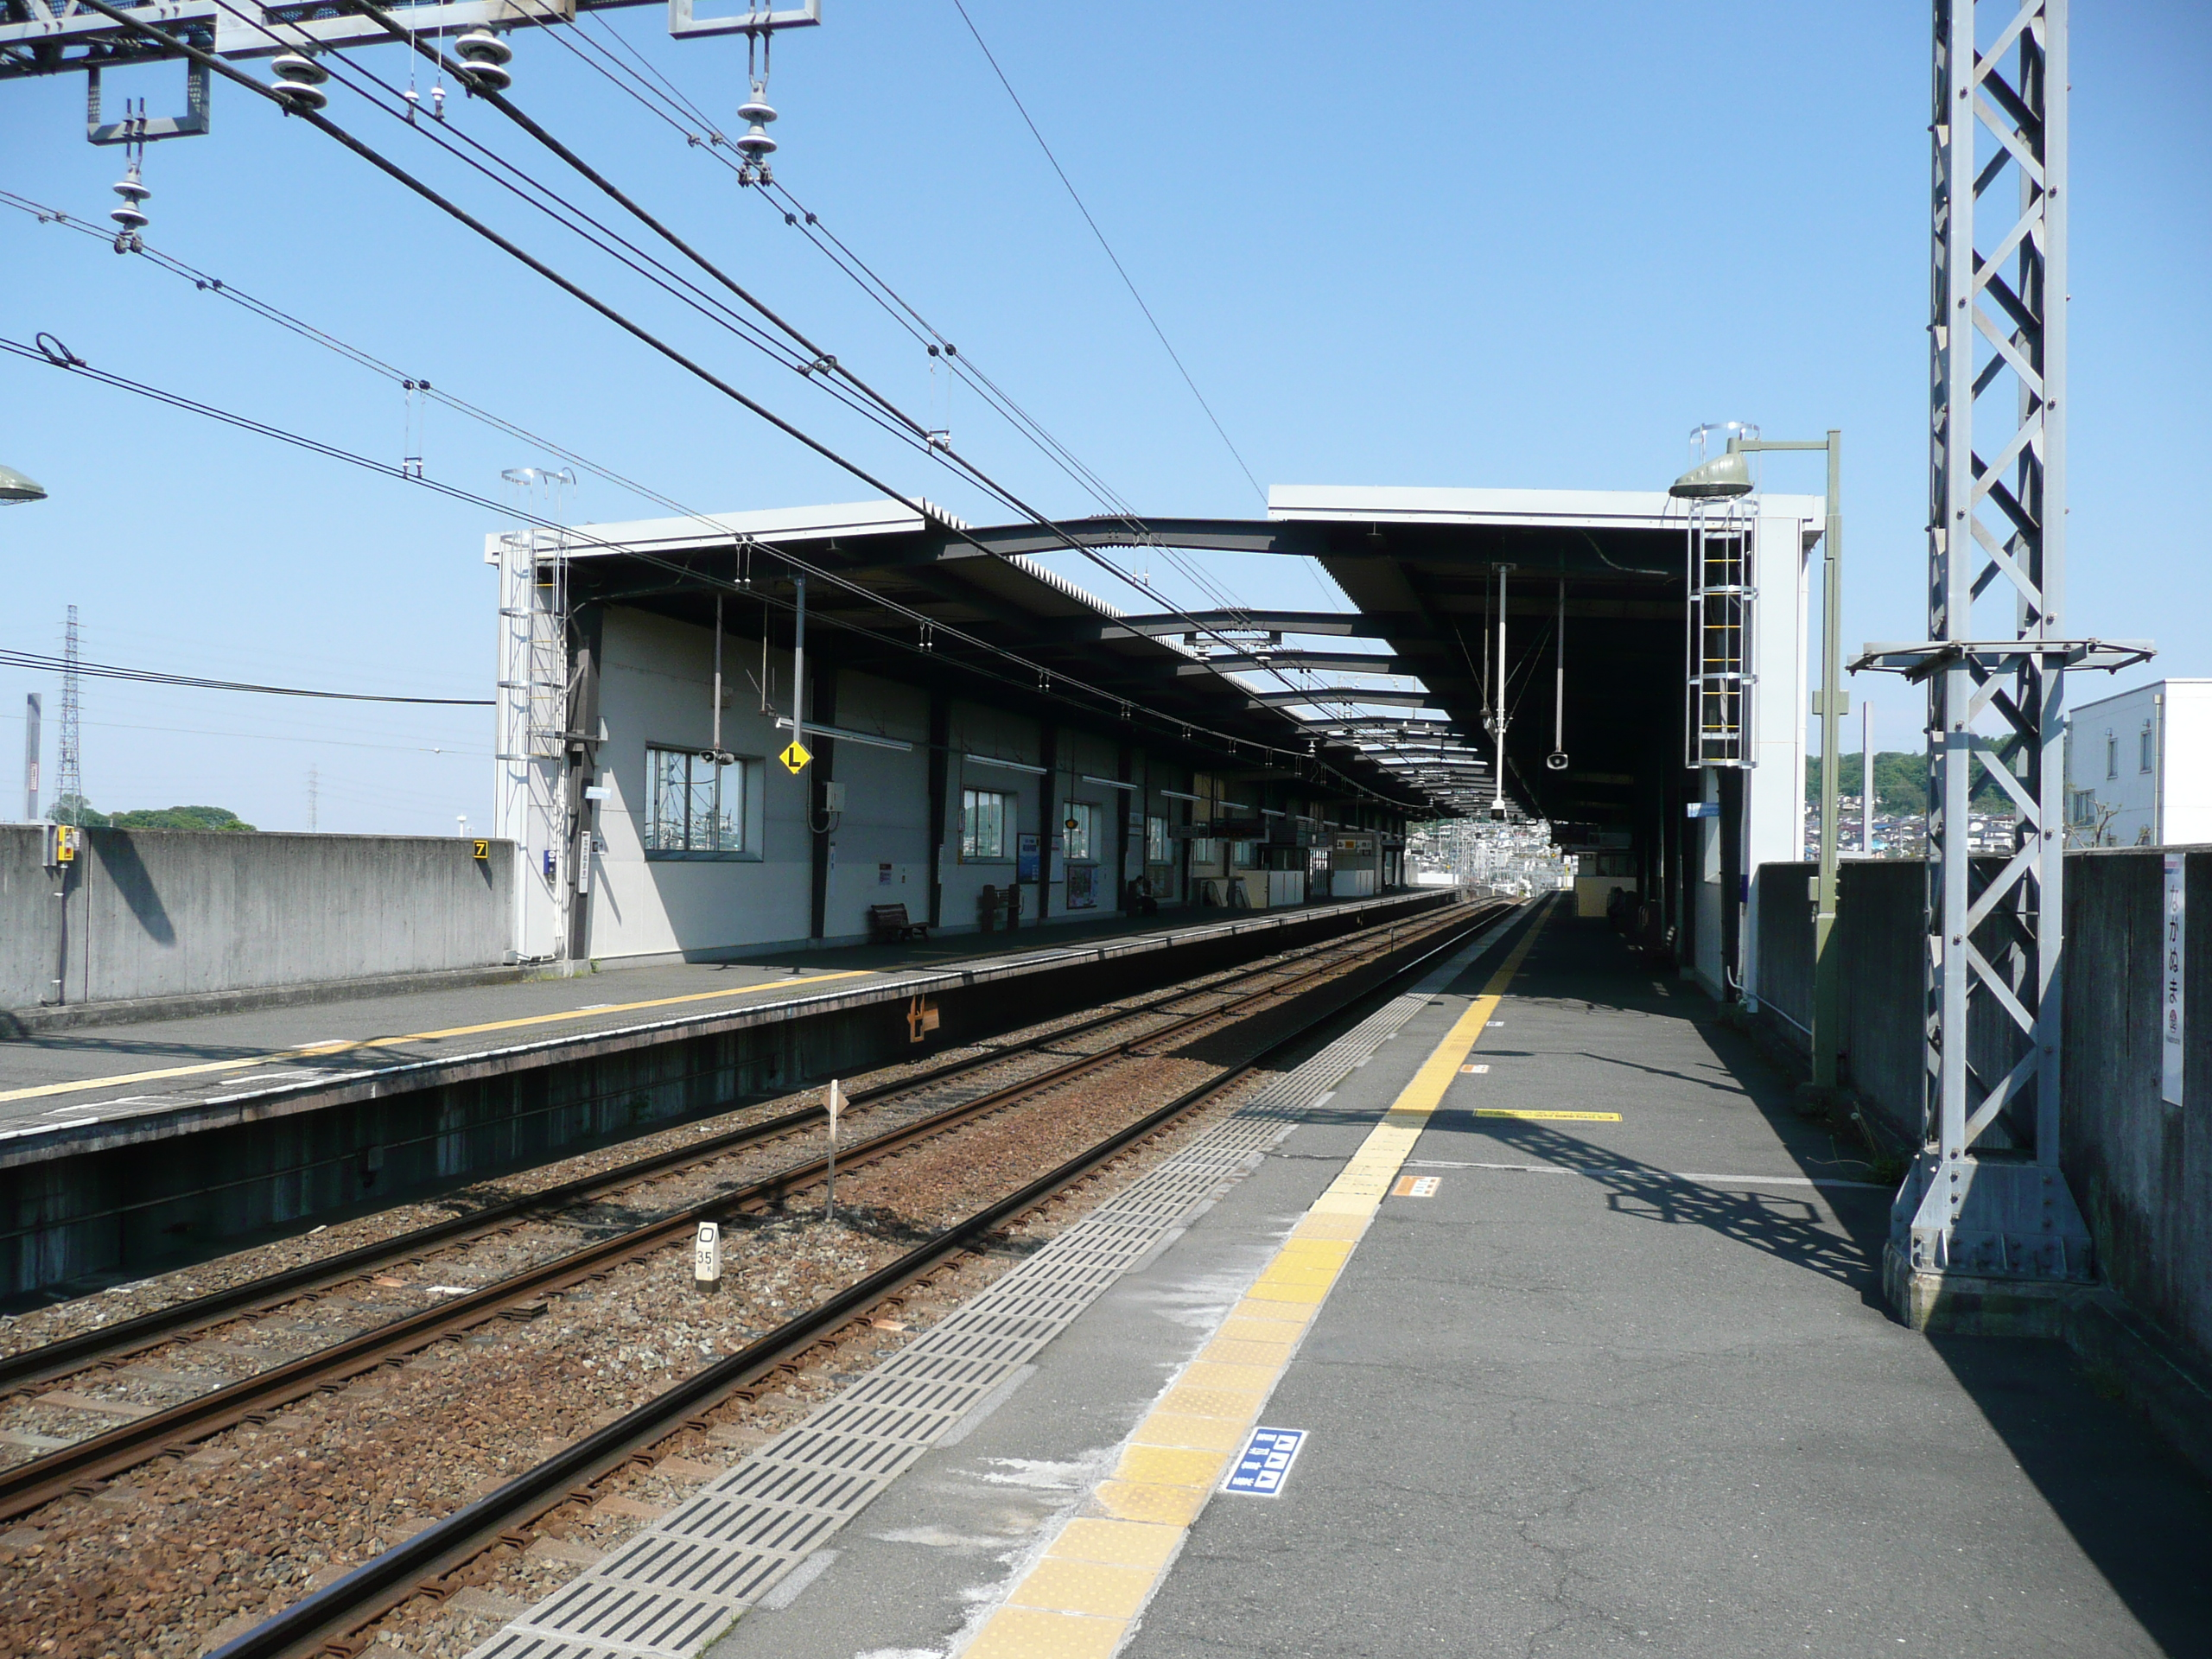 https://upload.wikimedia.org/wikipedia/commons/c/c4/Naganuma-Sta-Platform.JPG